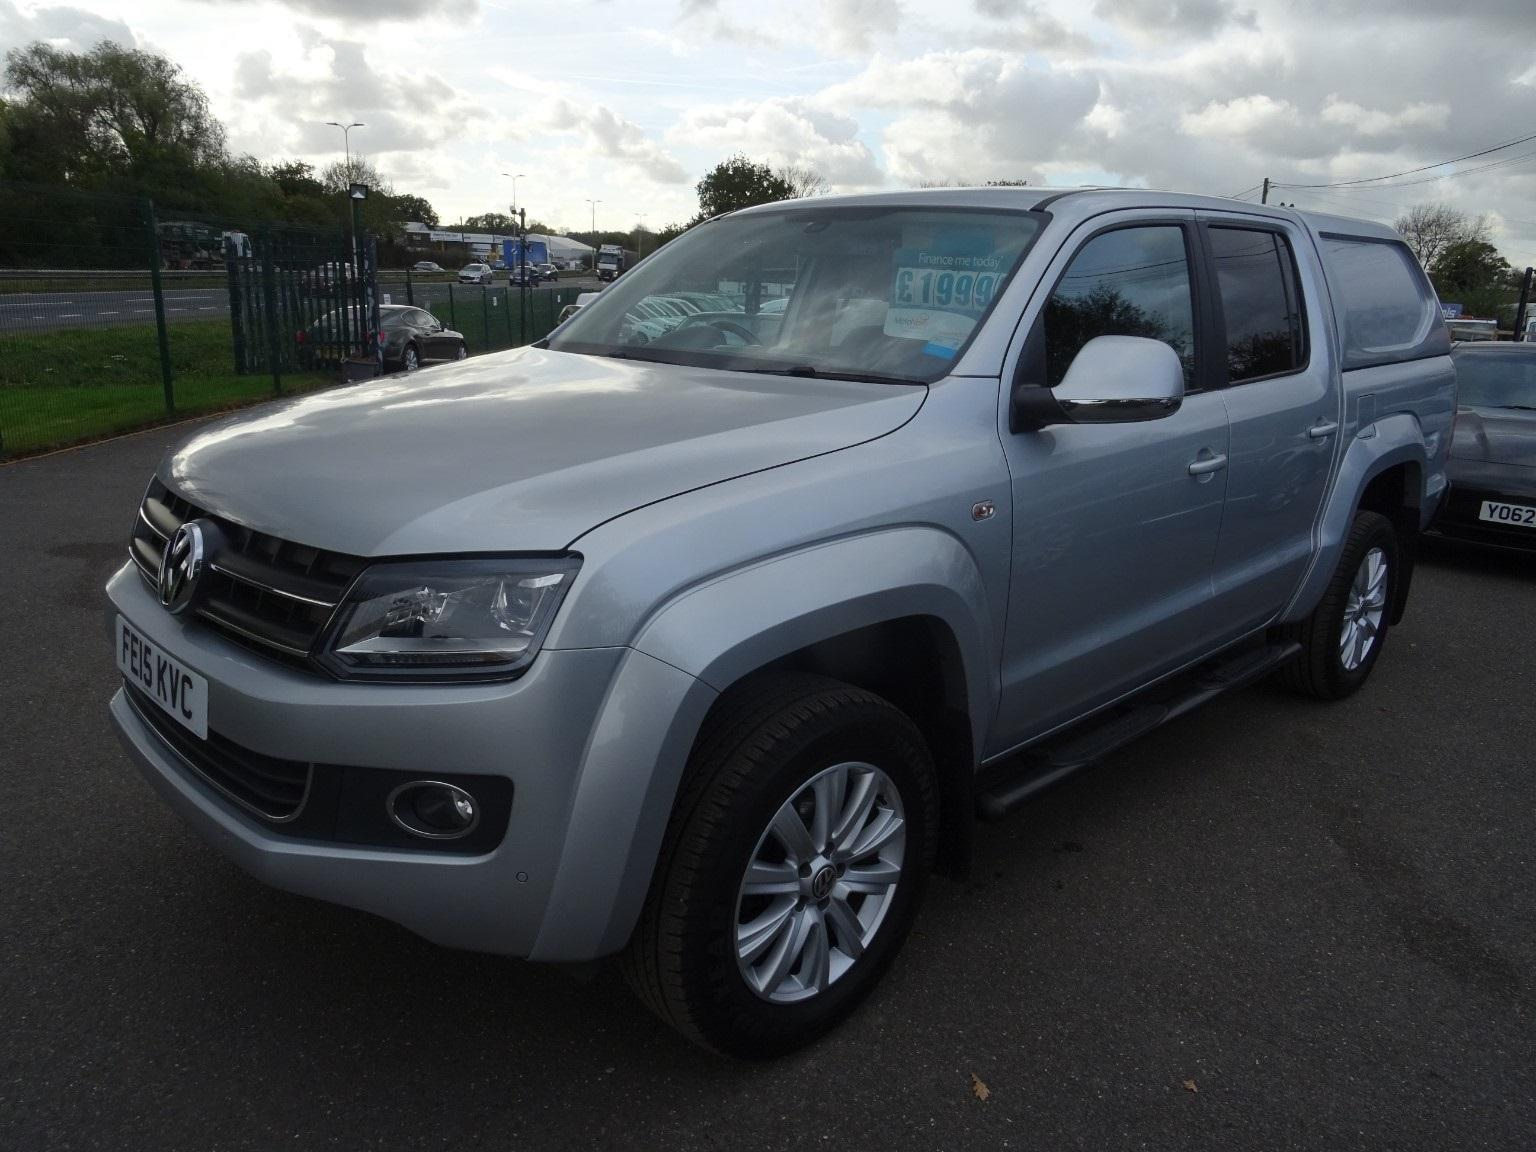 Volkswagen Amarok Dc 2.0 TDi Highline 4motion Pick-up Diesel Silver